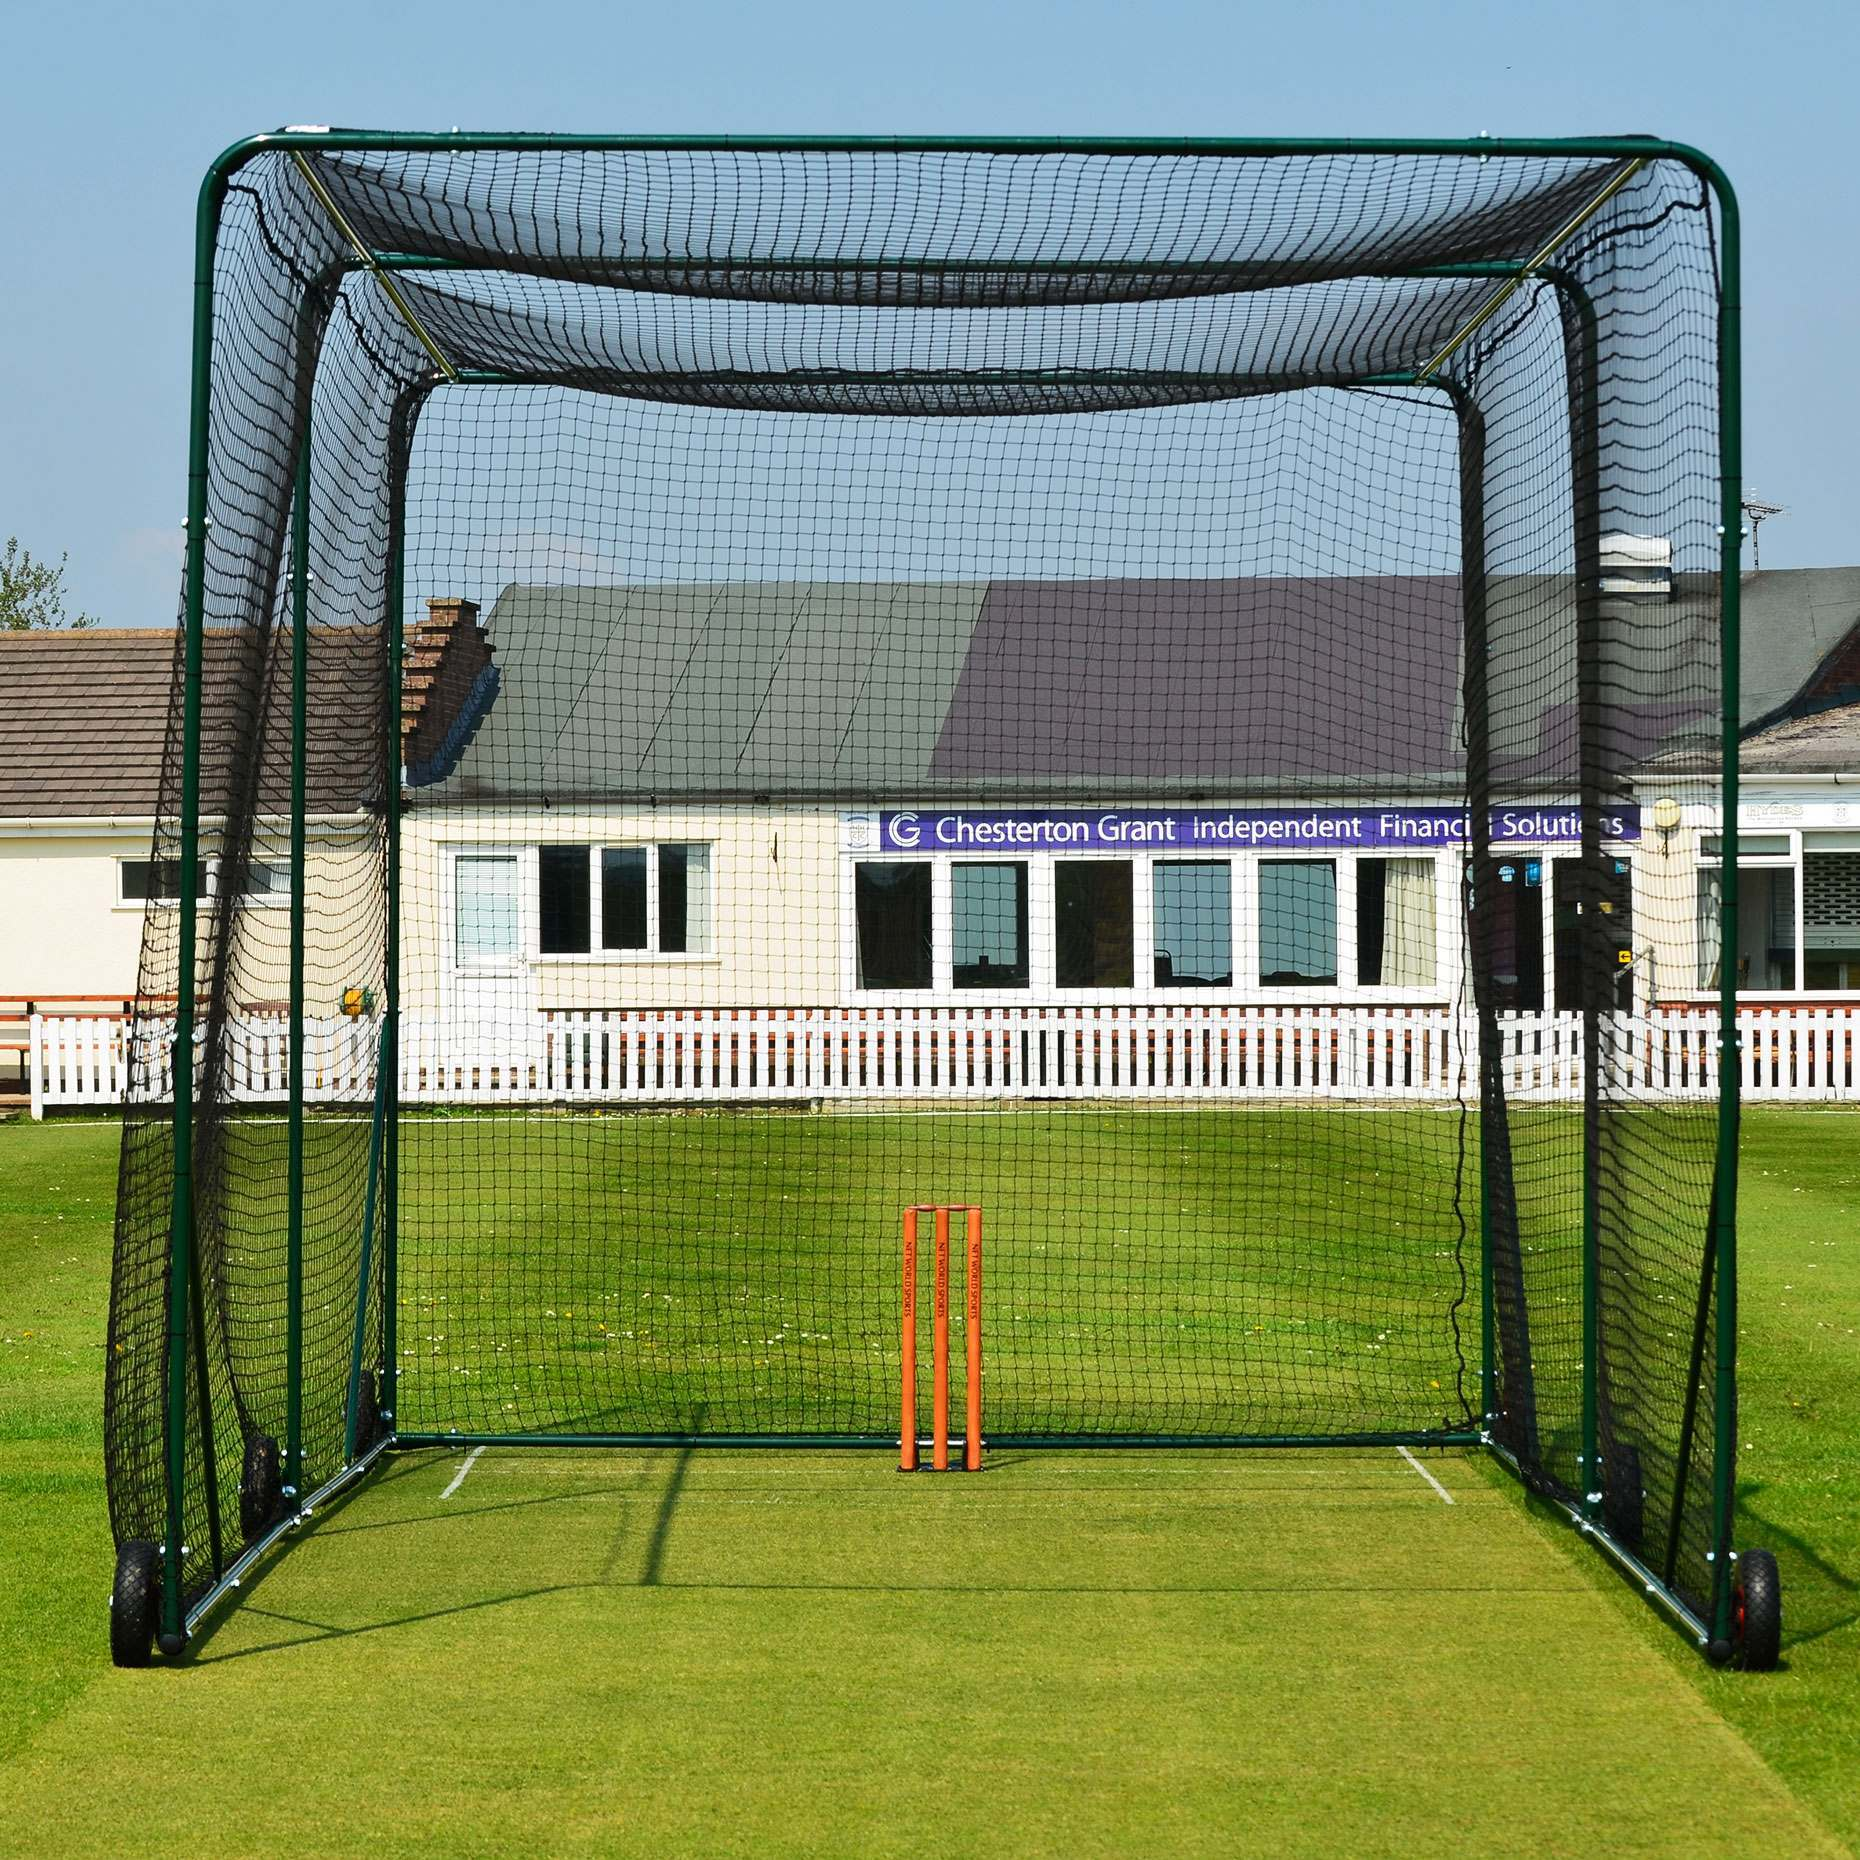 fortress mobile baseball batting practice cage net world sports